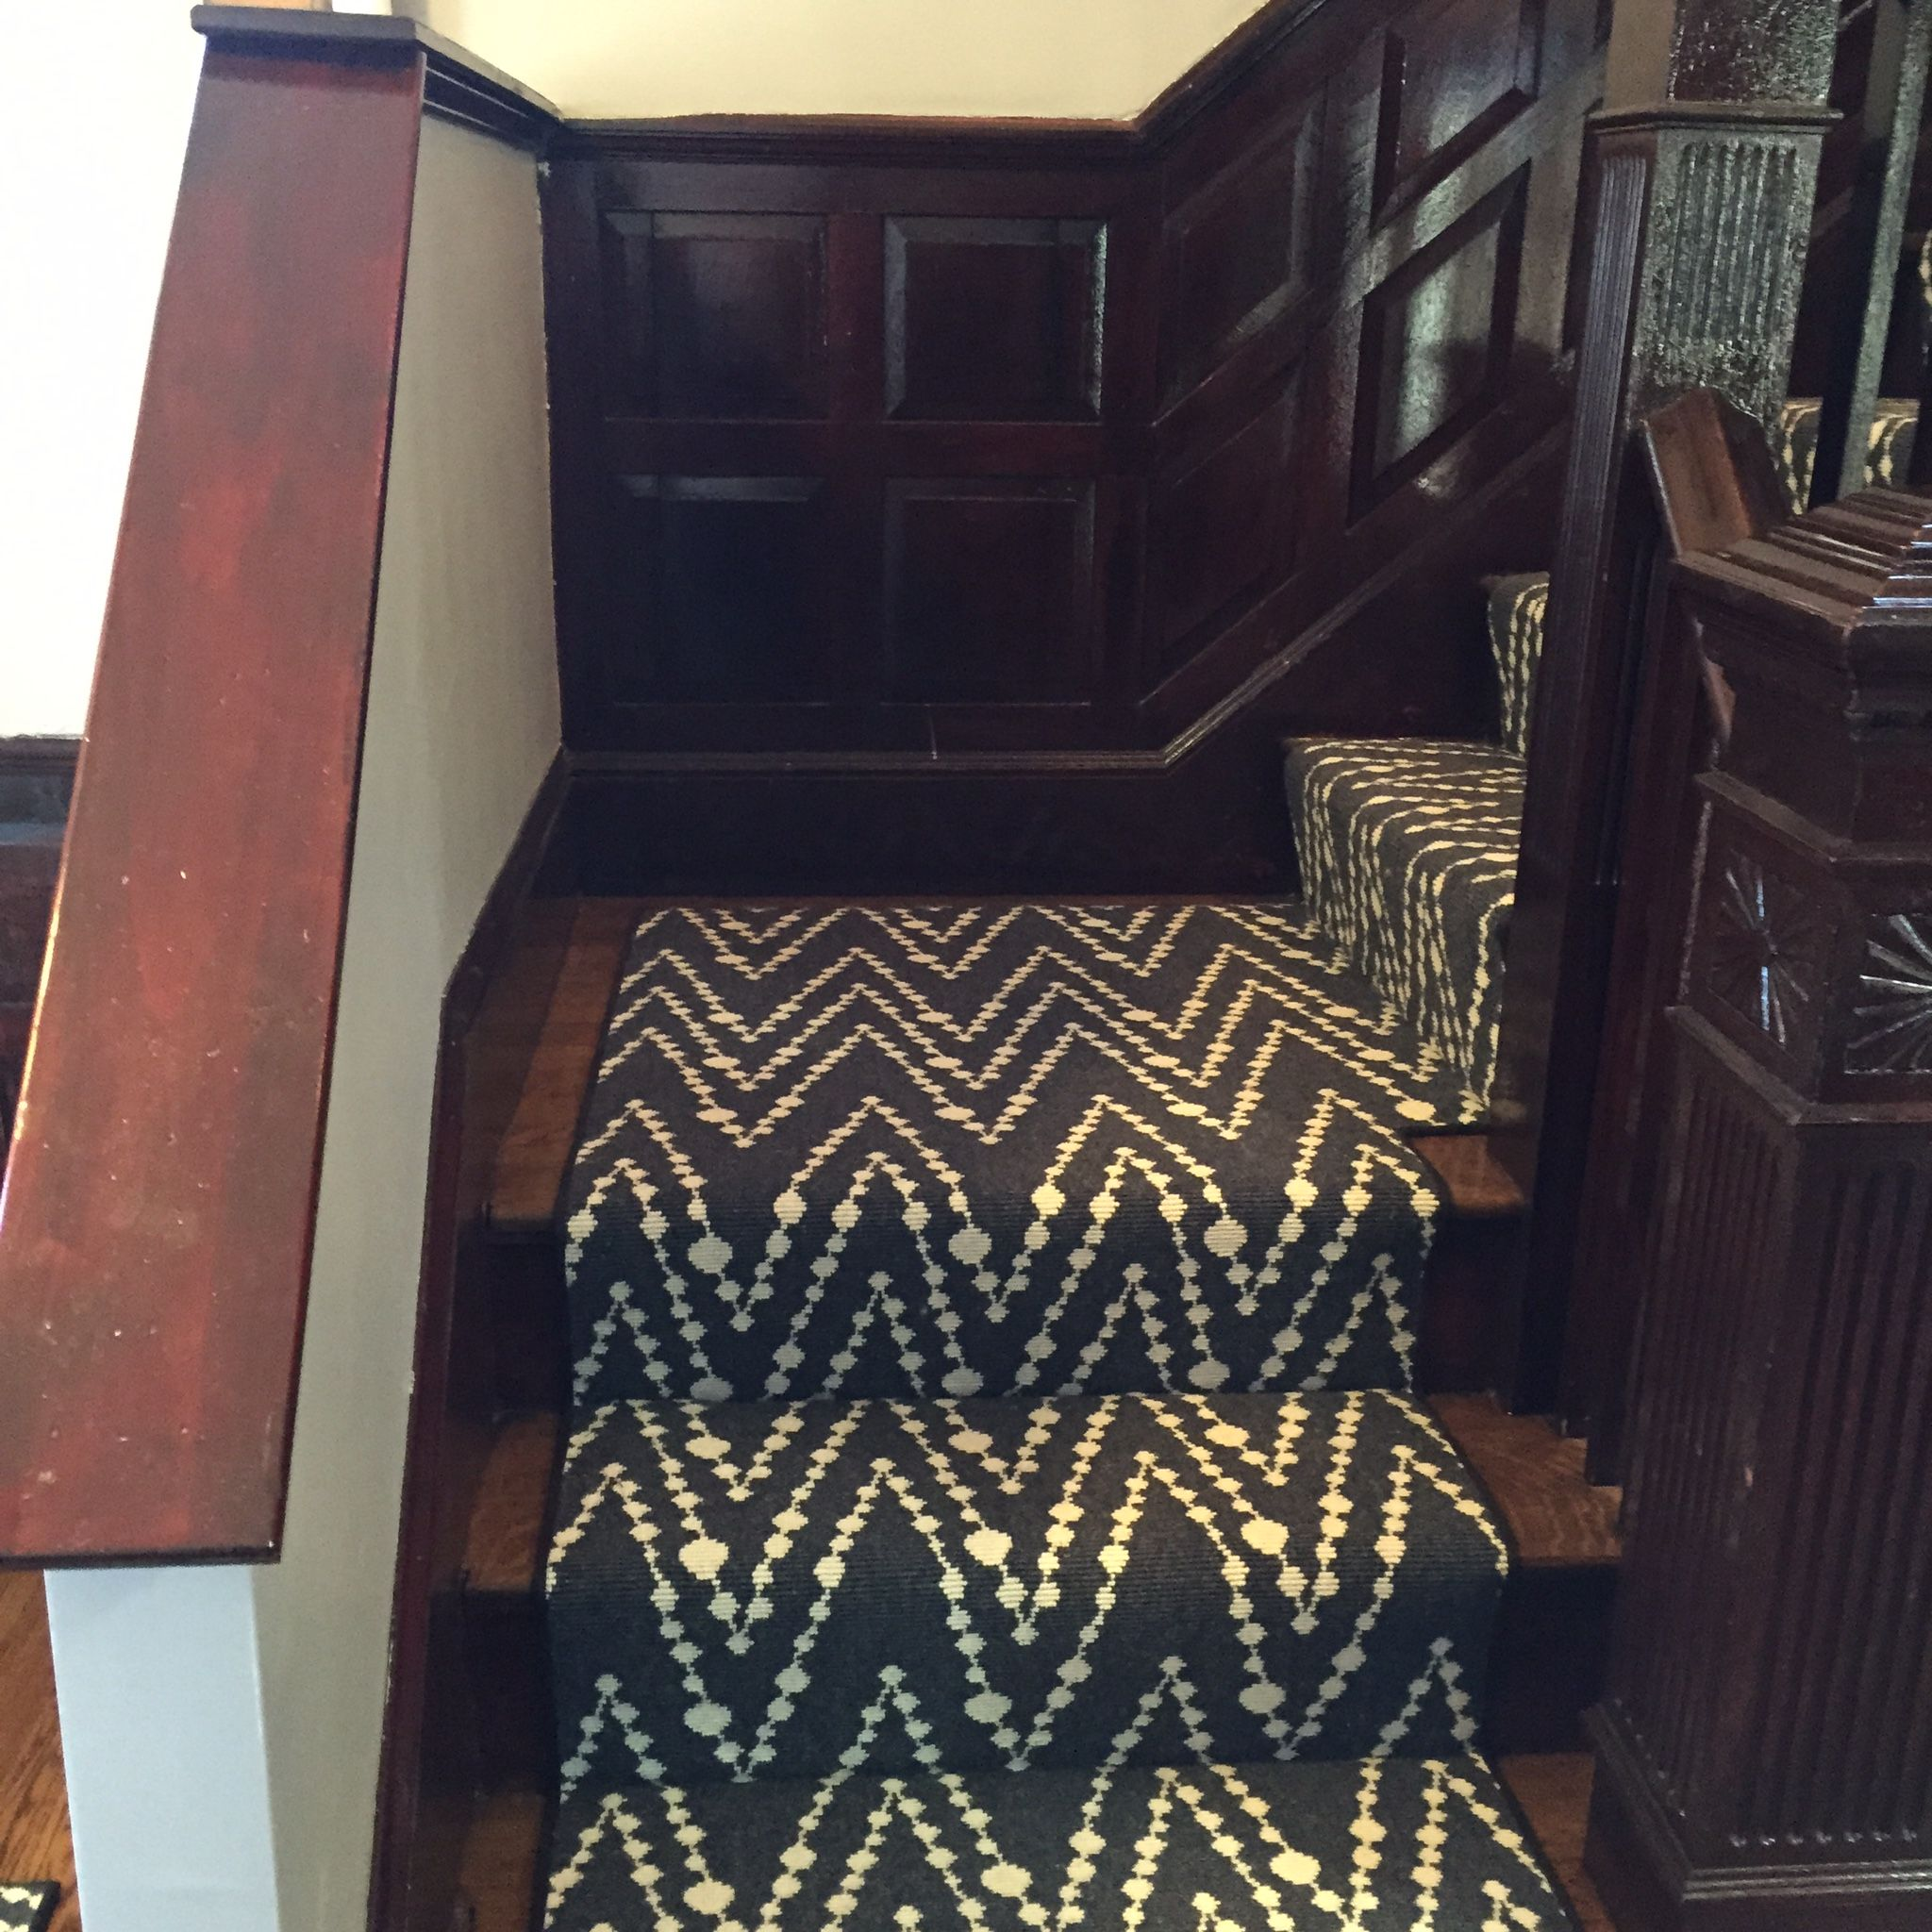 This Is A Prestige Mills Carpet And The Style Is Hippie Beads Carpet Stairs Home Carpet Stair Runner